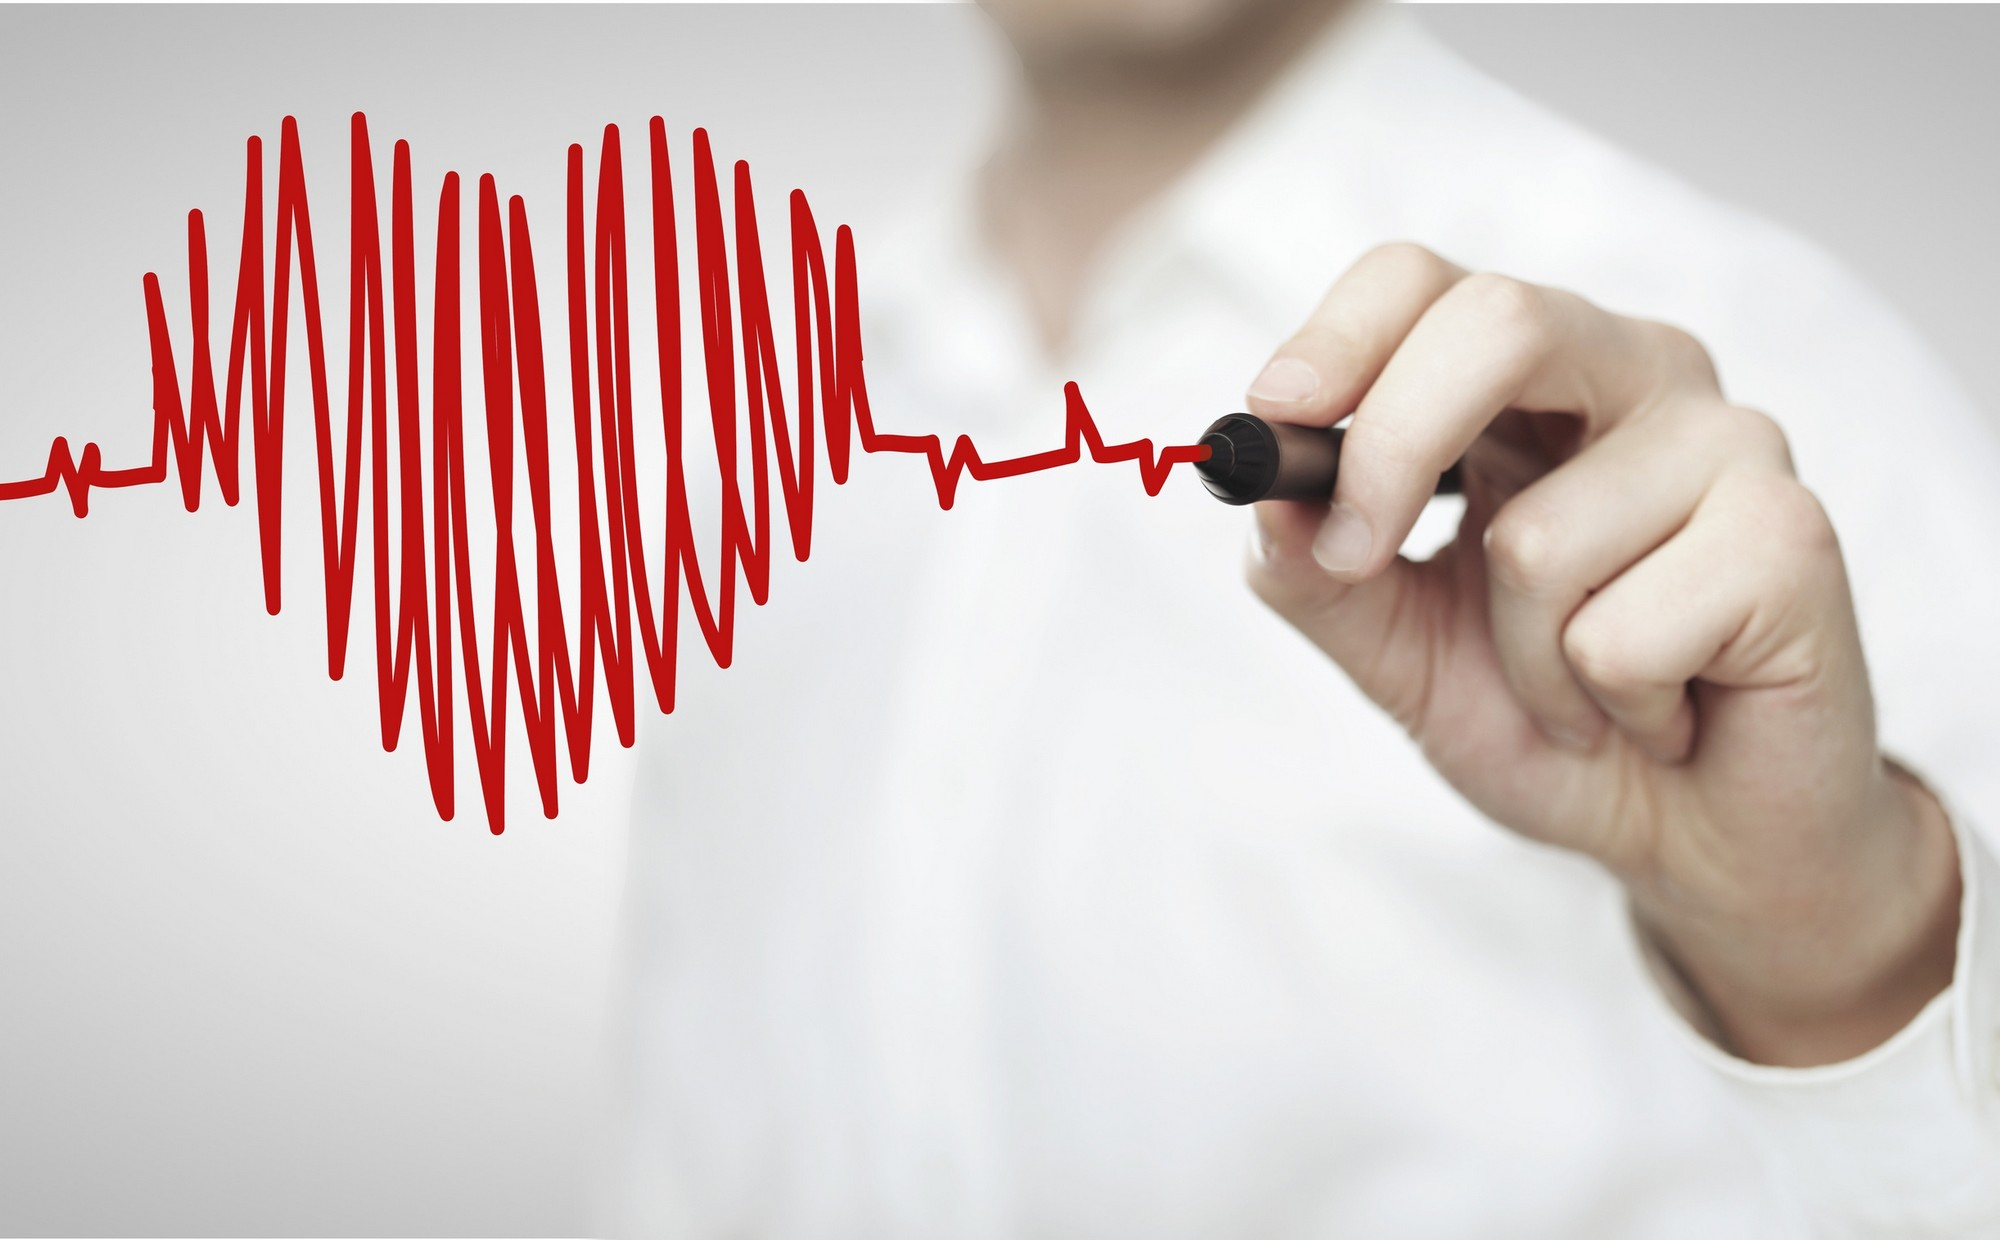 http://medicare.bold-themes.com/clinic/wp-content/uploads/sites/2/2015/12/heart-health-1.jpg